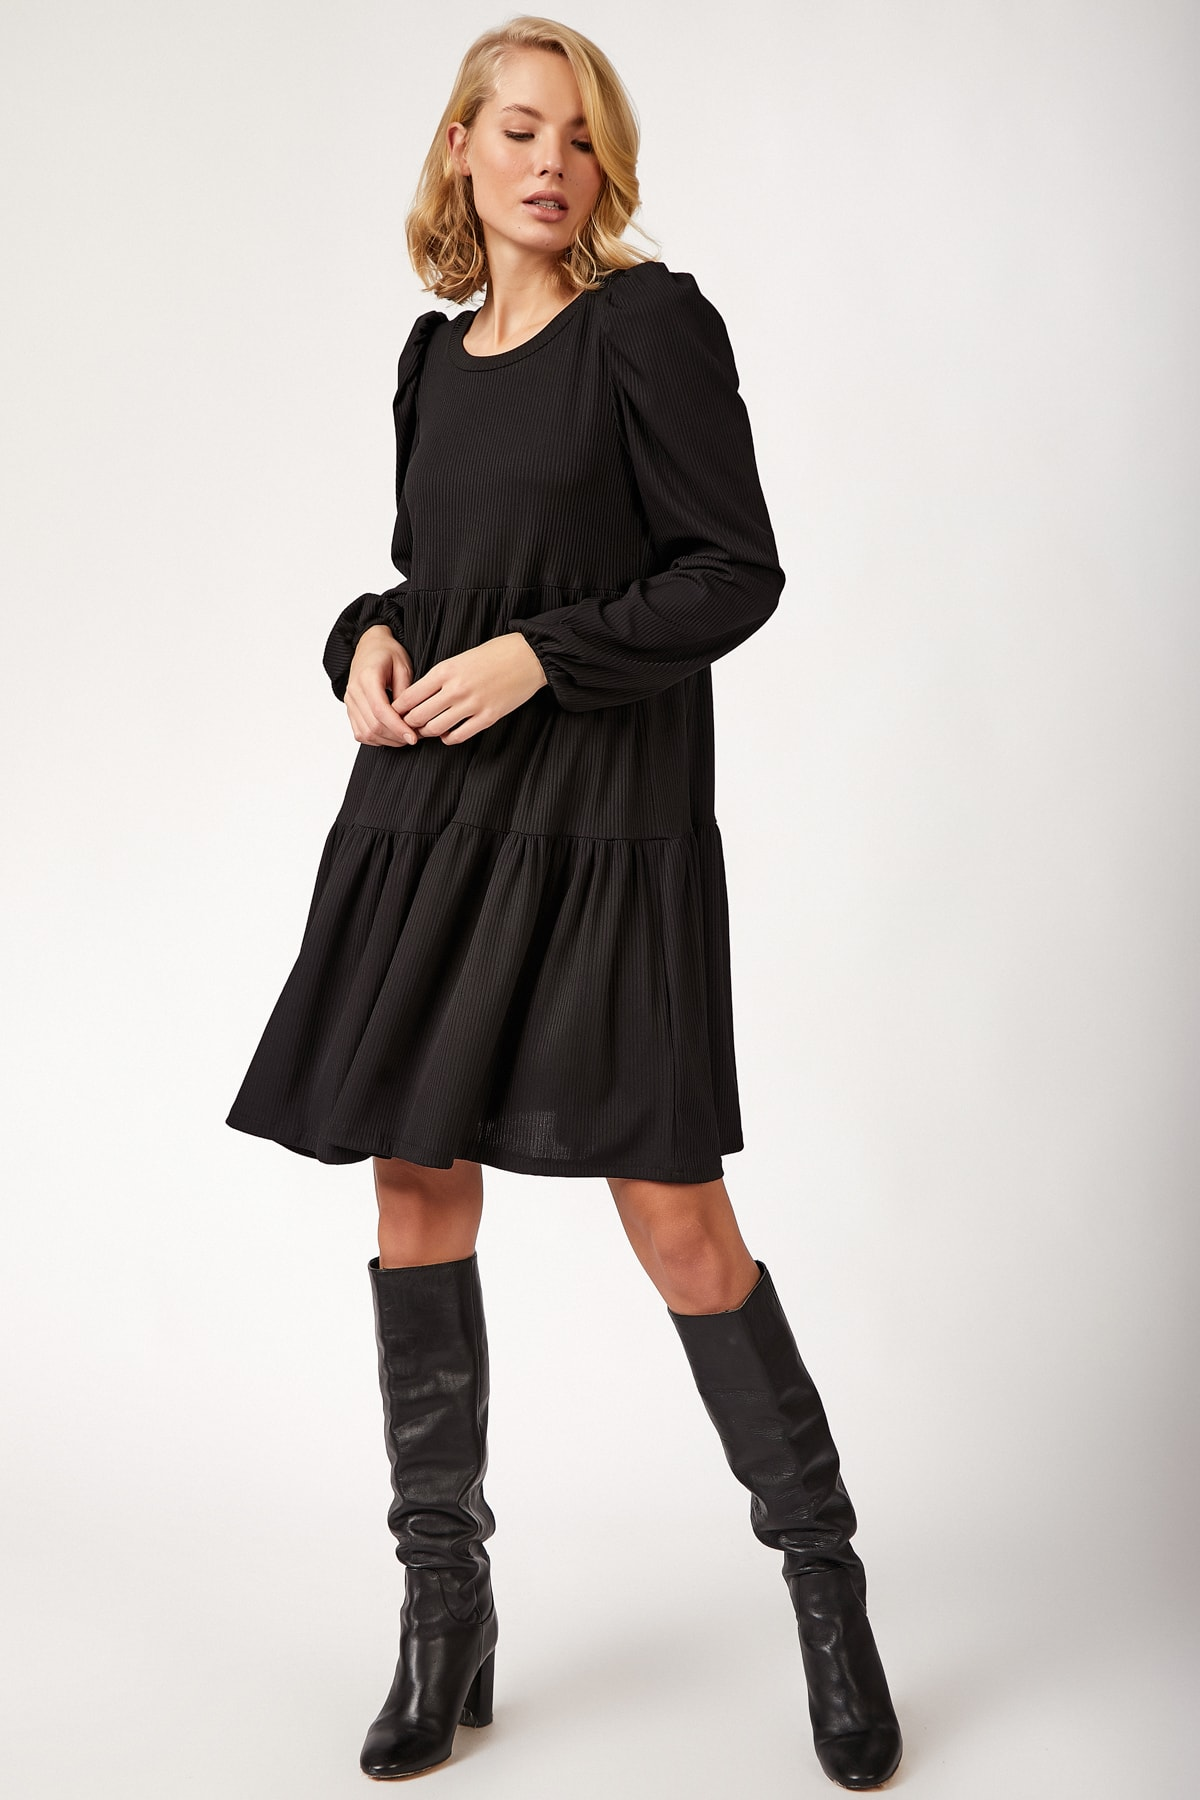 Happiness Ist. Women's Black Skirt Flywheel Ribbed Dress BL00166 BL00166